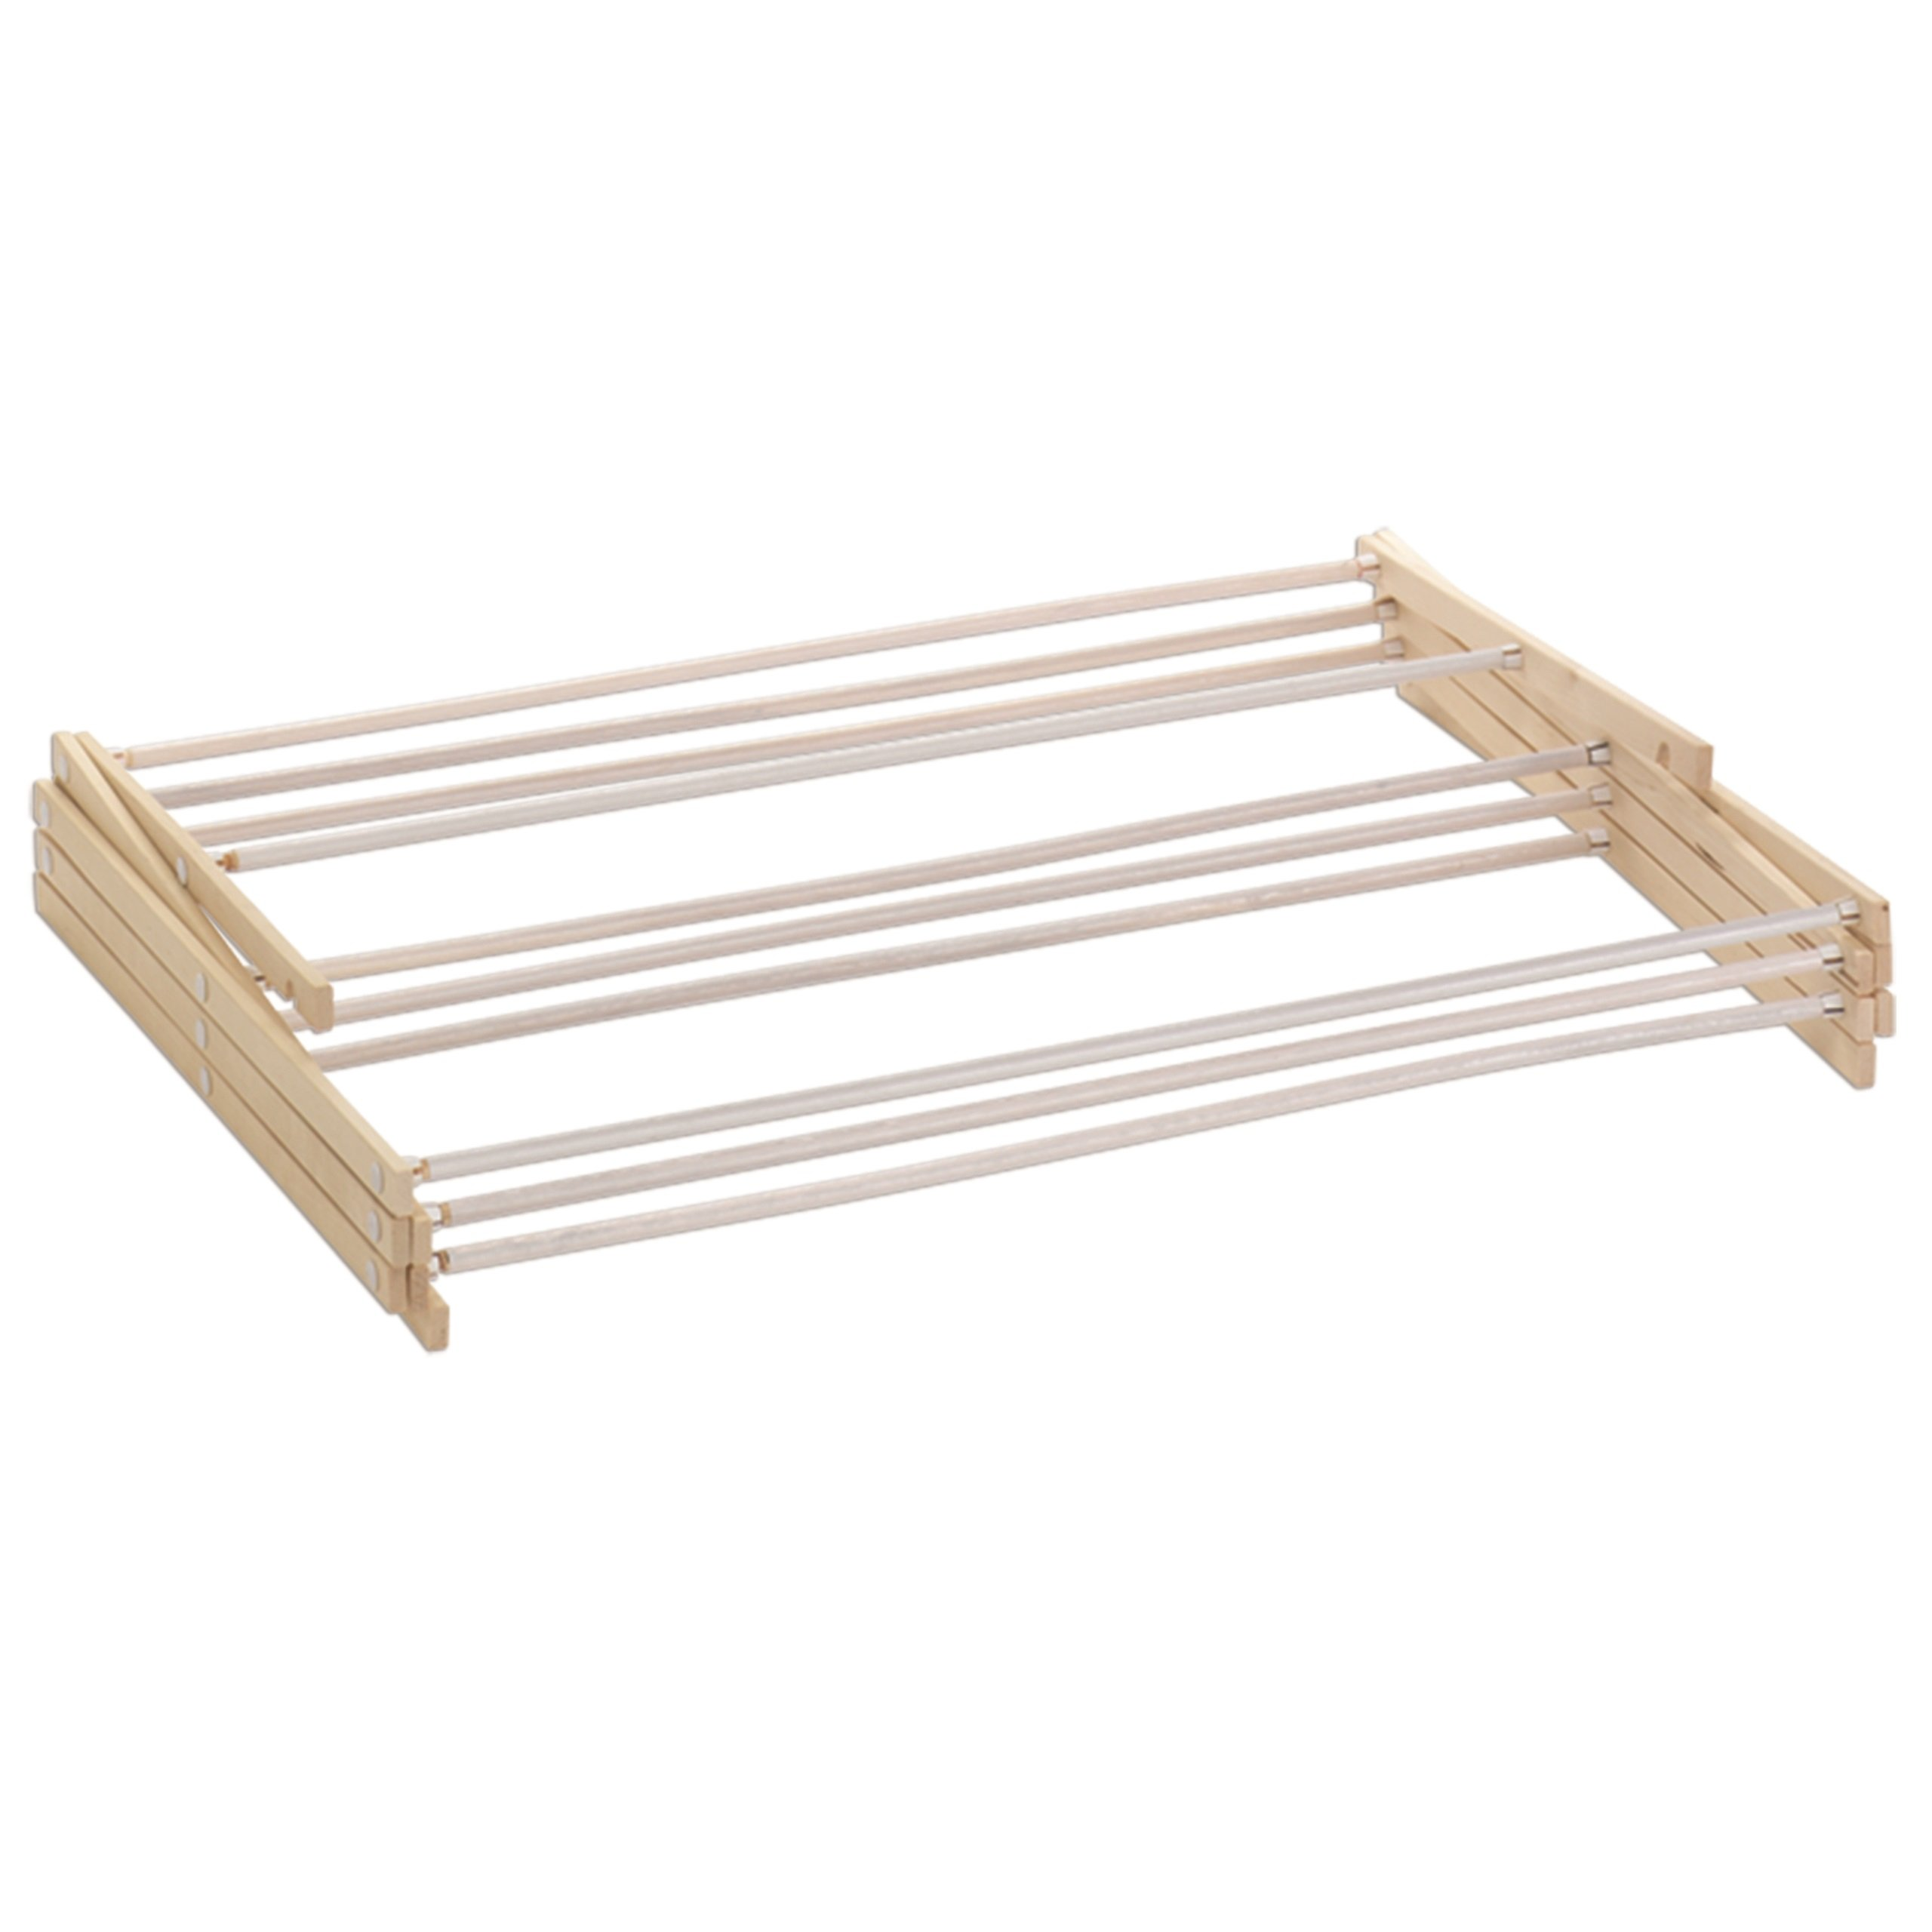 HOMZ Drying Rack, Ready to Assemble, 42'' x 29'' x 14'', Natural Wood (4230031) by HOMZ (Image #2)